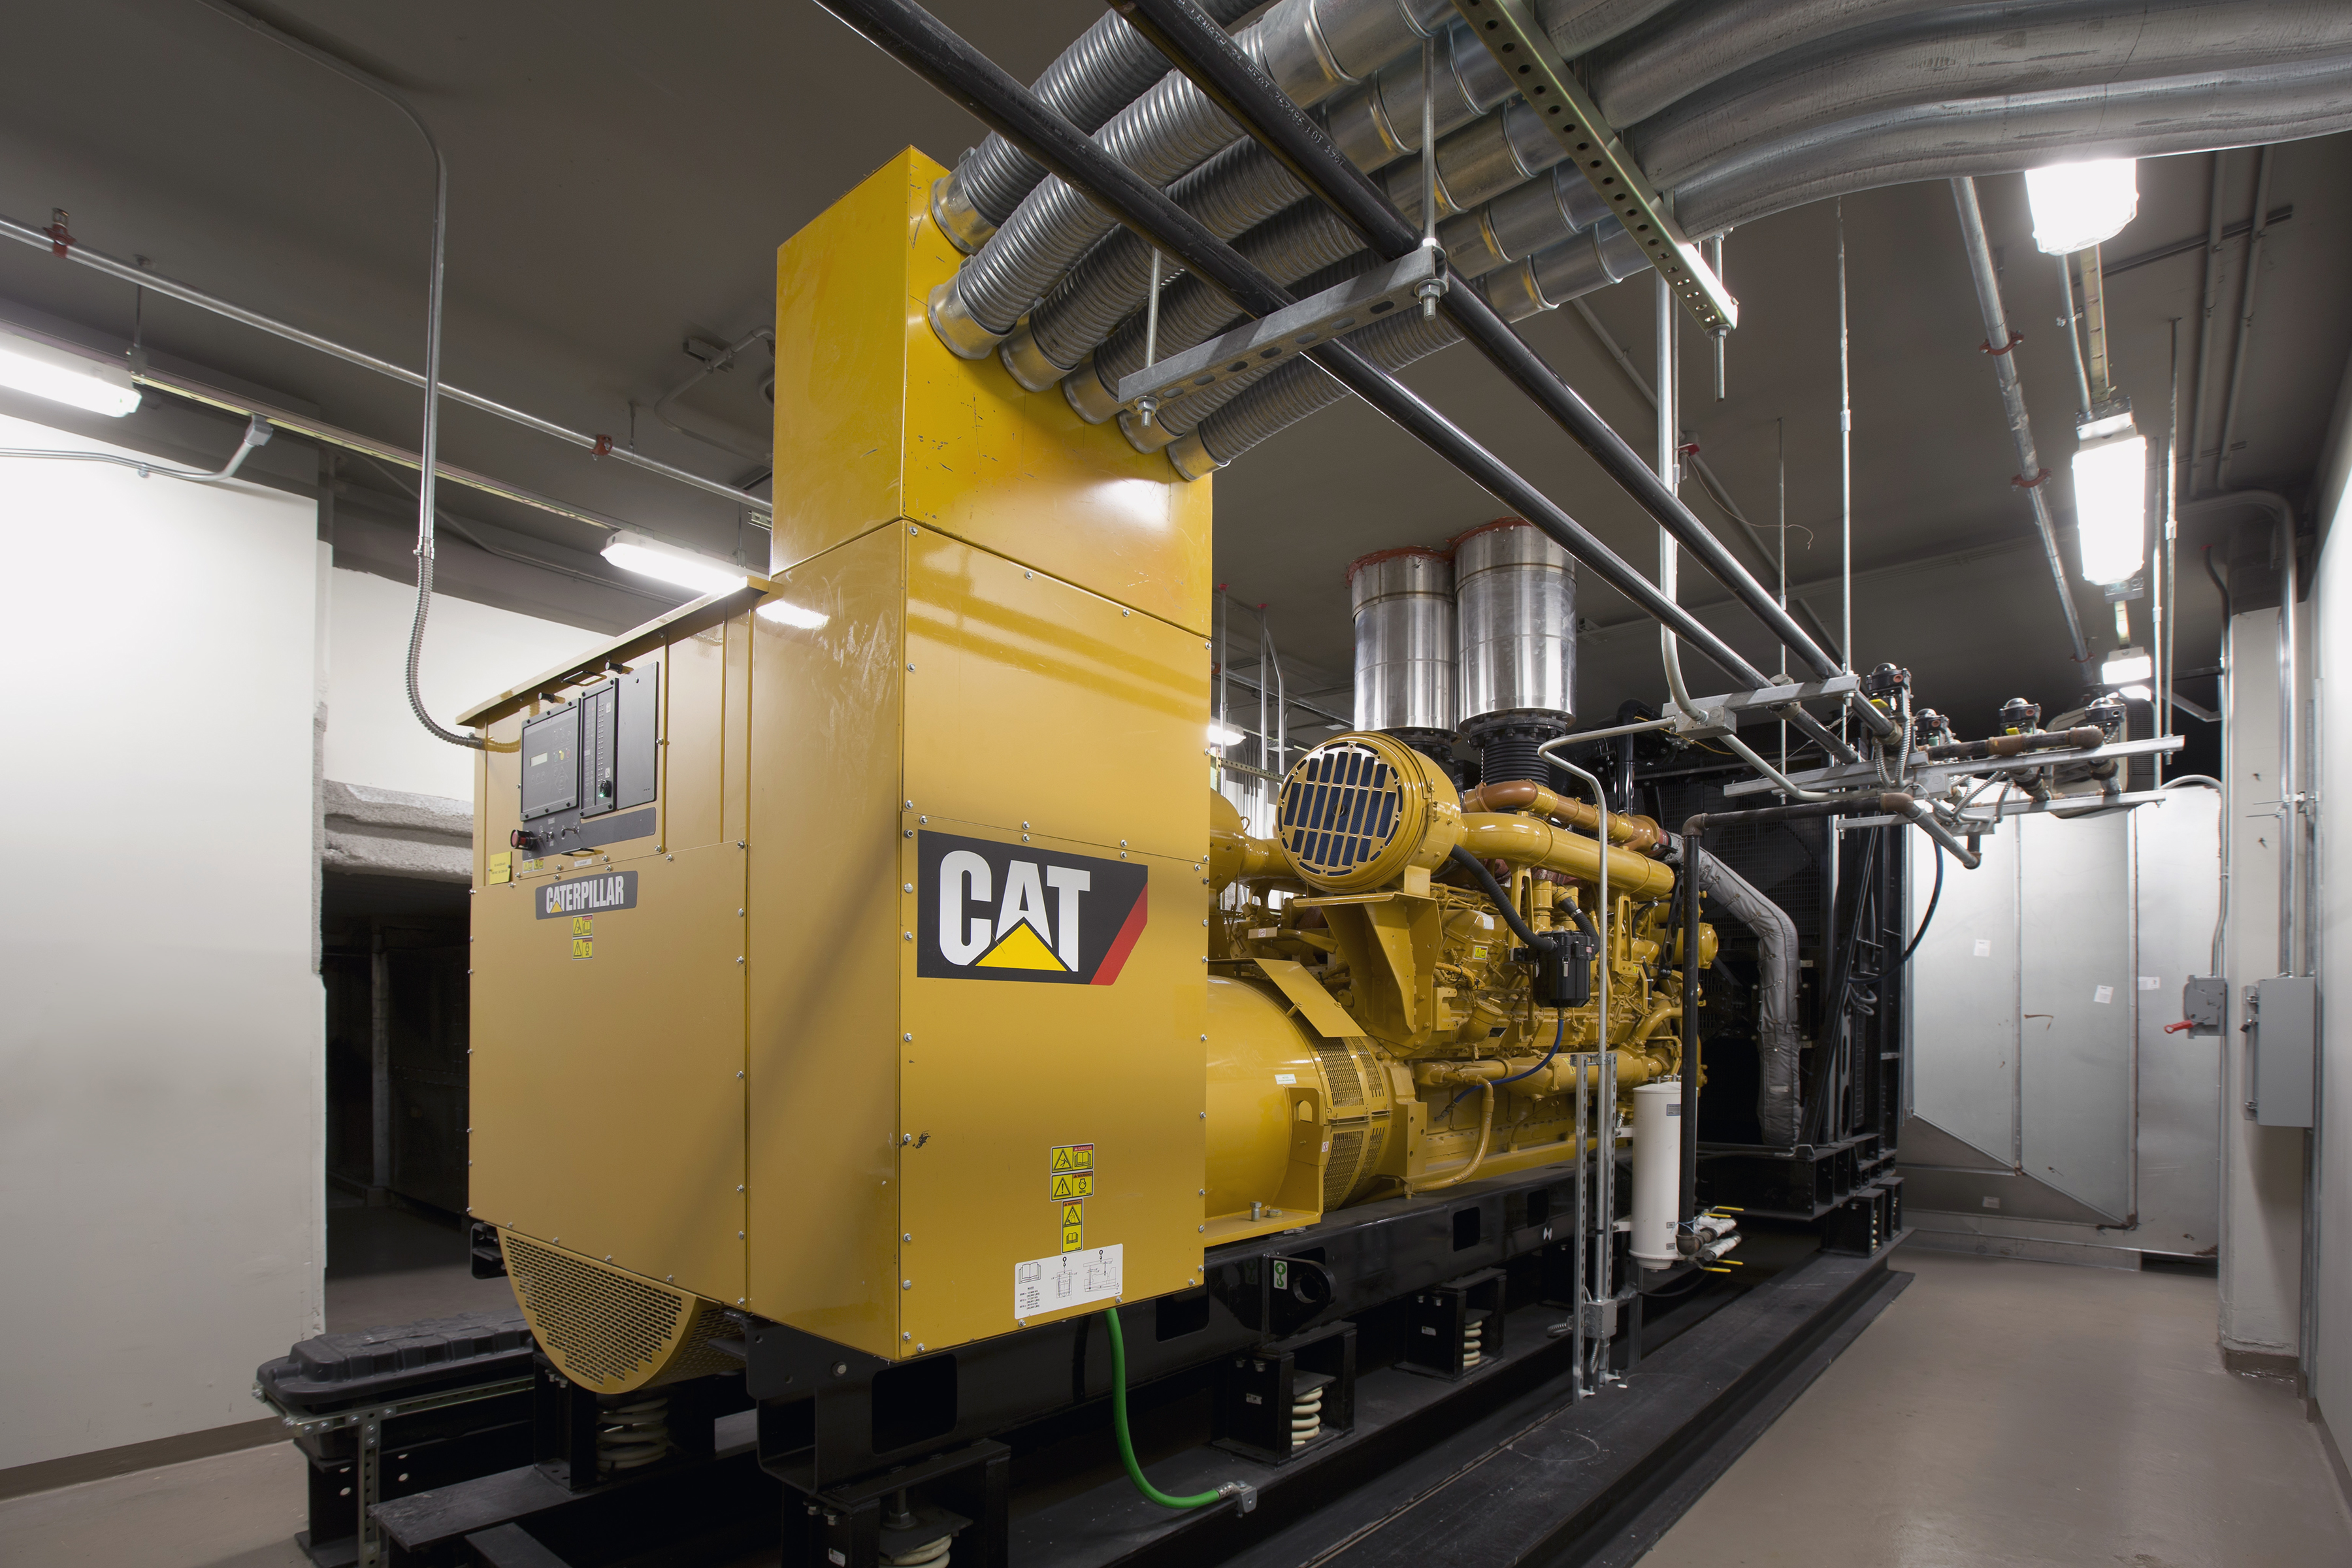 Ensuring your diesel-fuelled generators are compliant